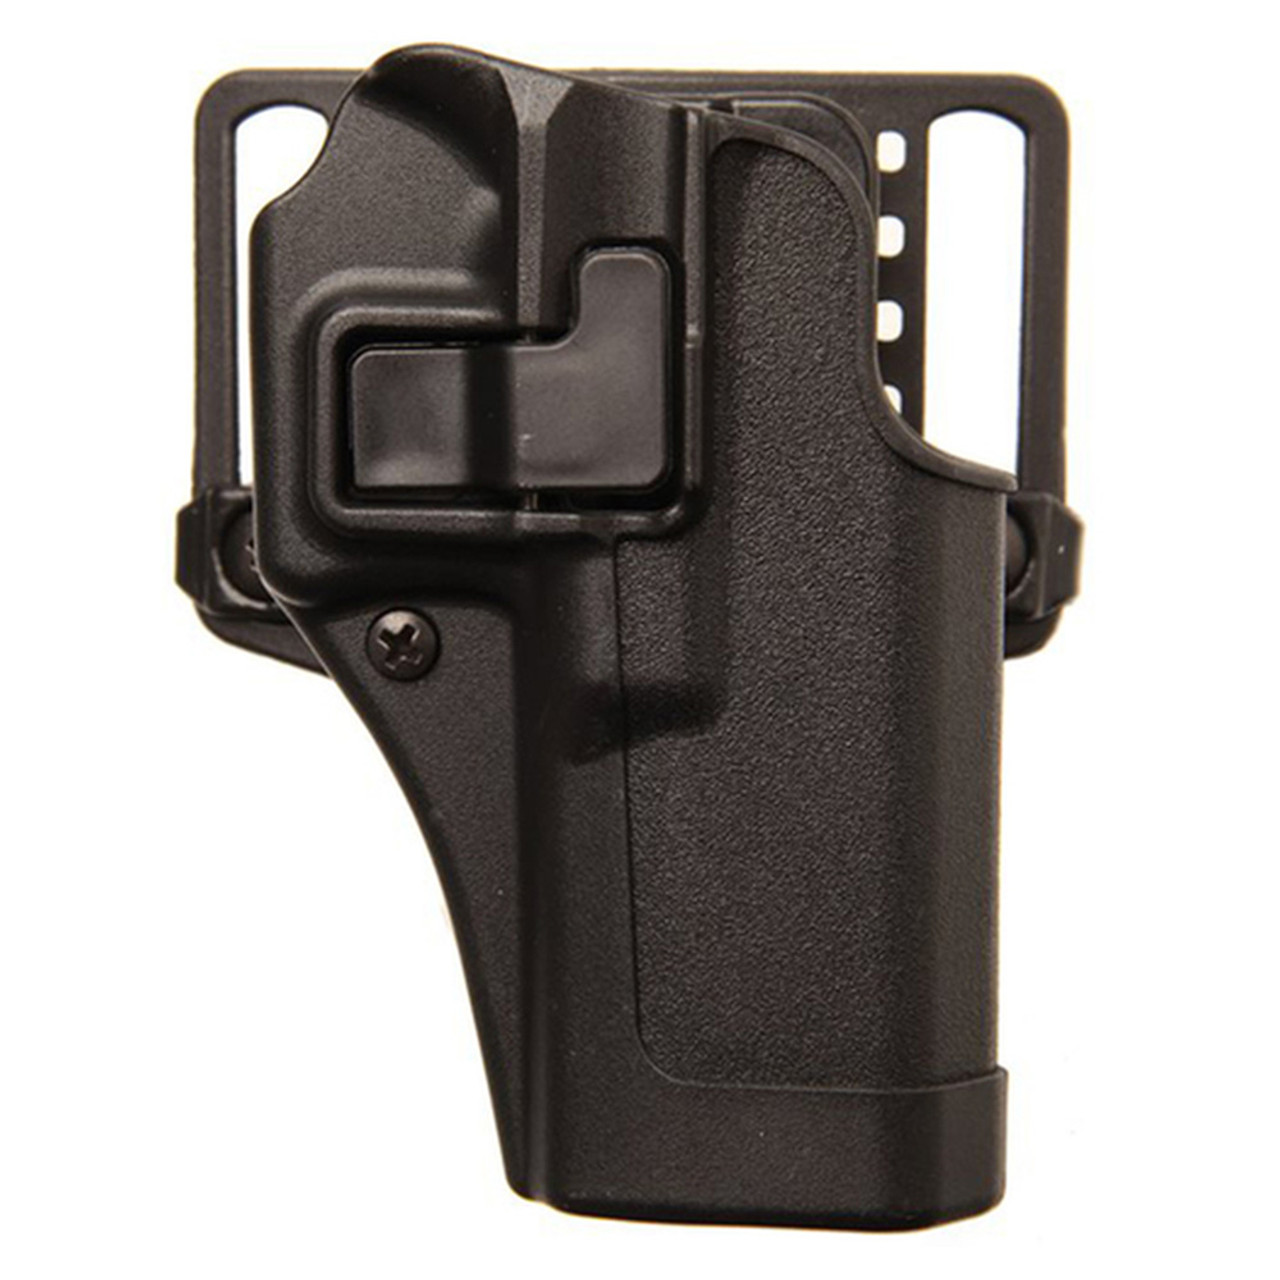 Blackhawk! 4105 SERPA® CQC® Concealment Holster Matte Finish, available in Black, Coyote Tan, Foliage Green, and Olive Drab